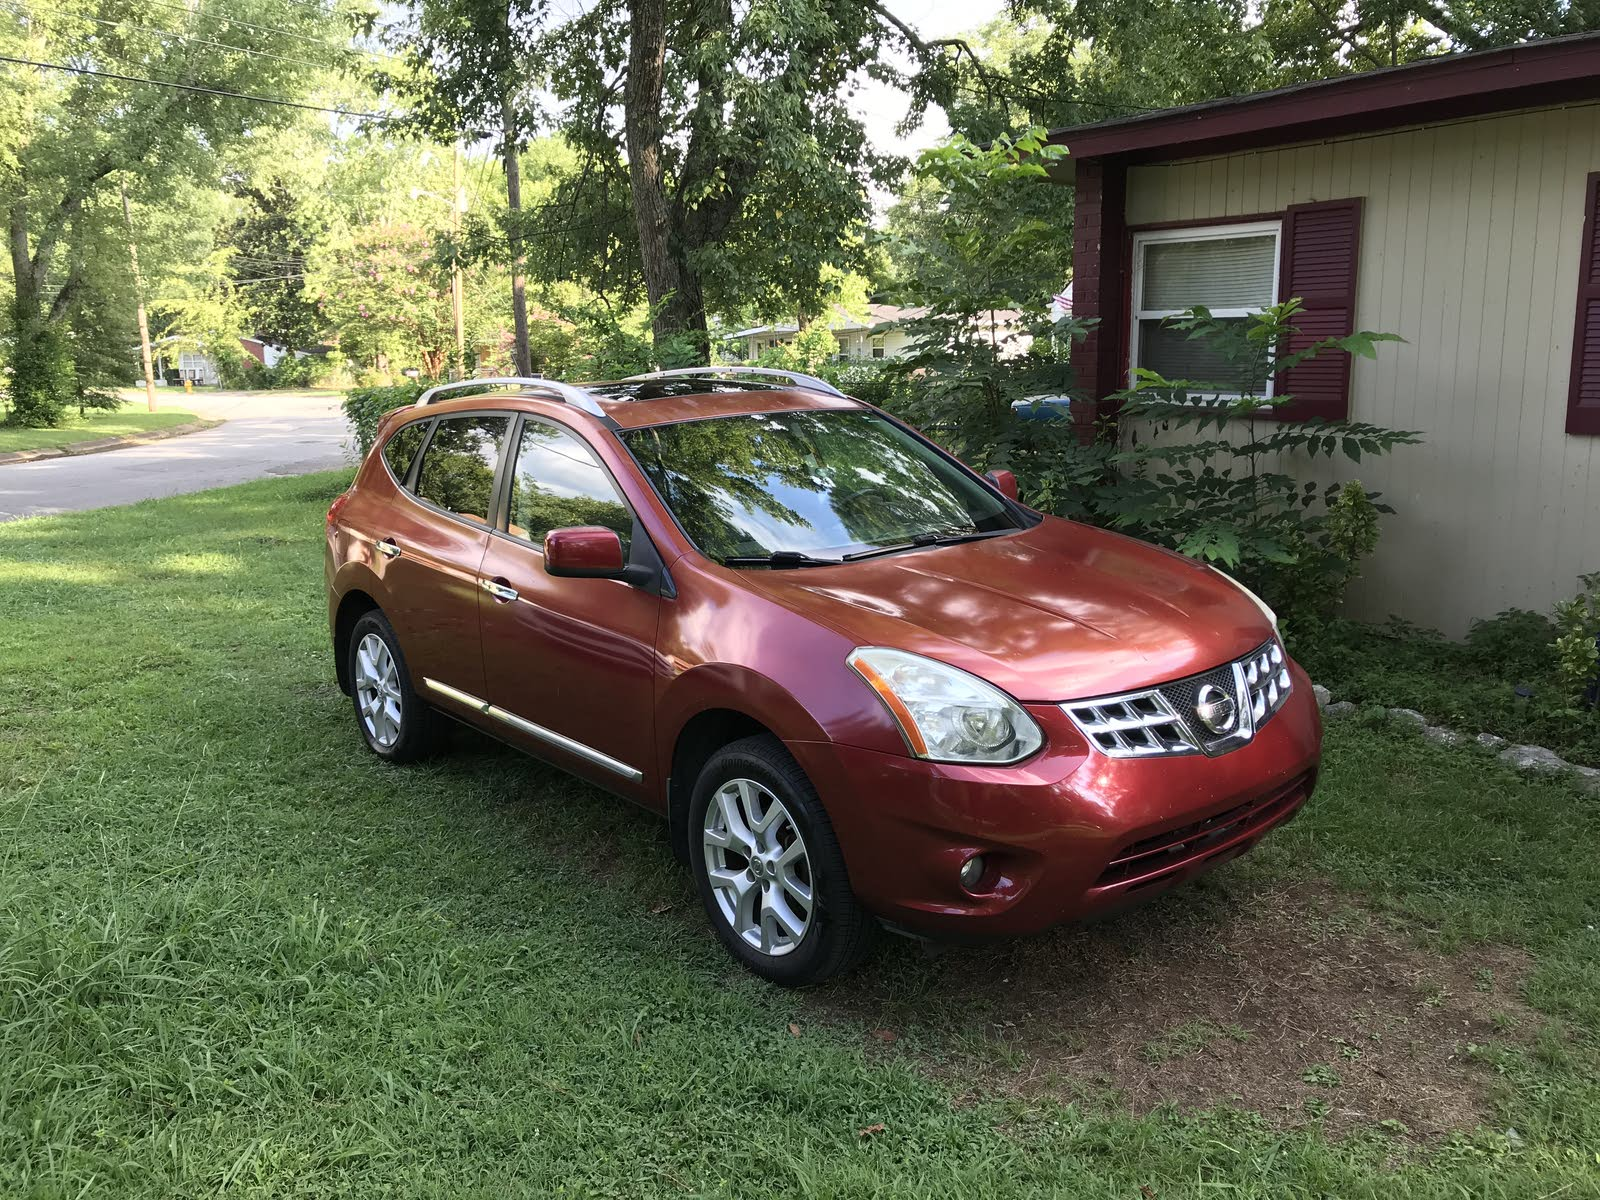 Nissan Rogue Questions - Over the past 2 months my gas